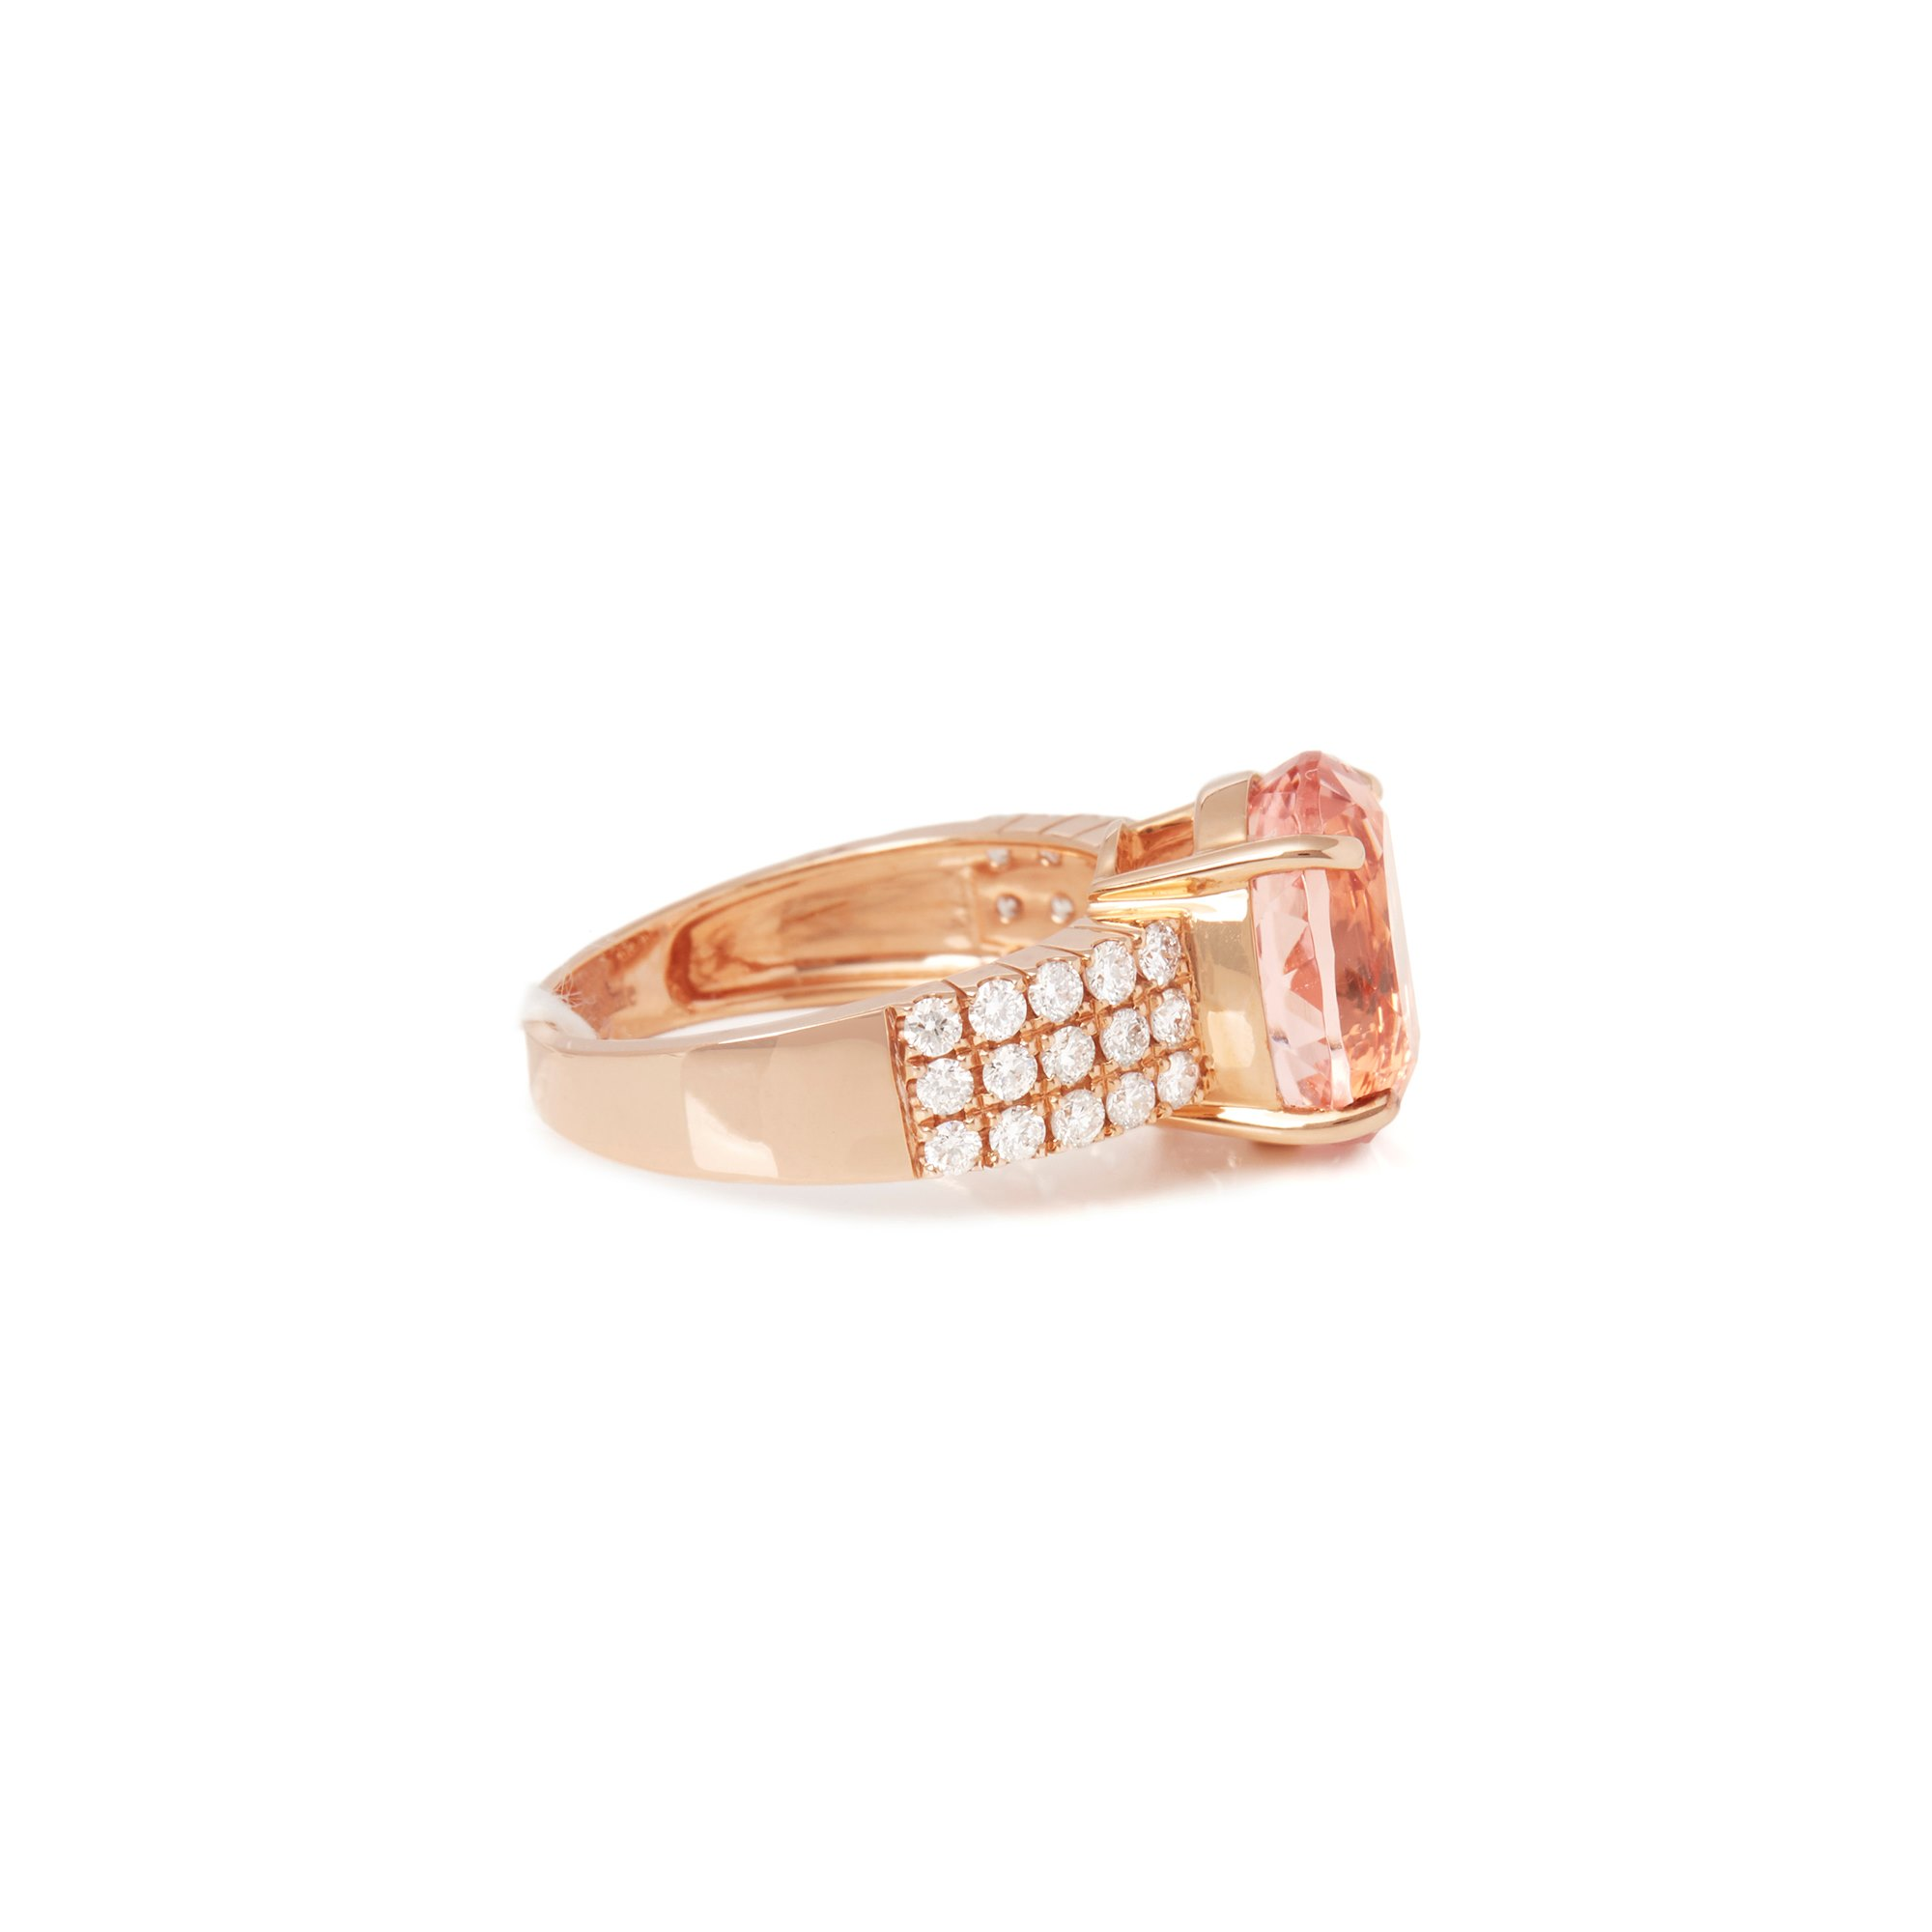 David Jerome Certified 5.46ct Untreated Brazilian Oval Cut Morganite and Diamond 18ct gold Ring